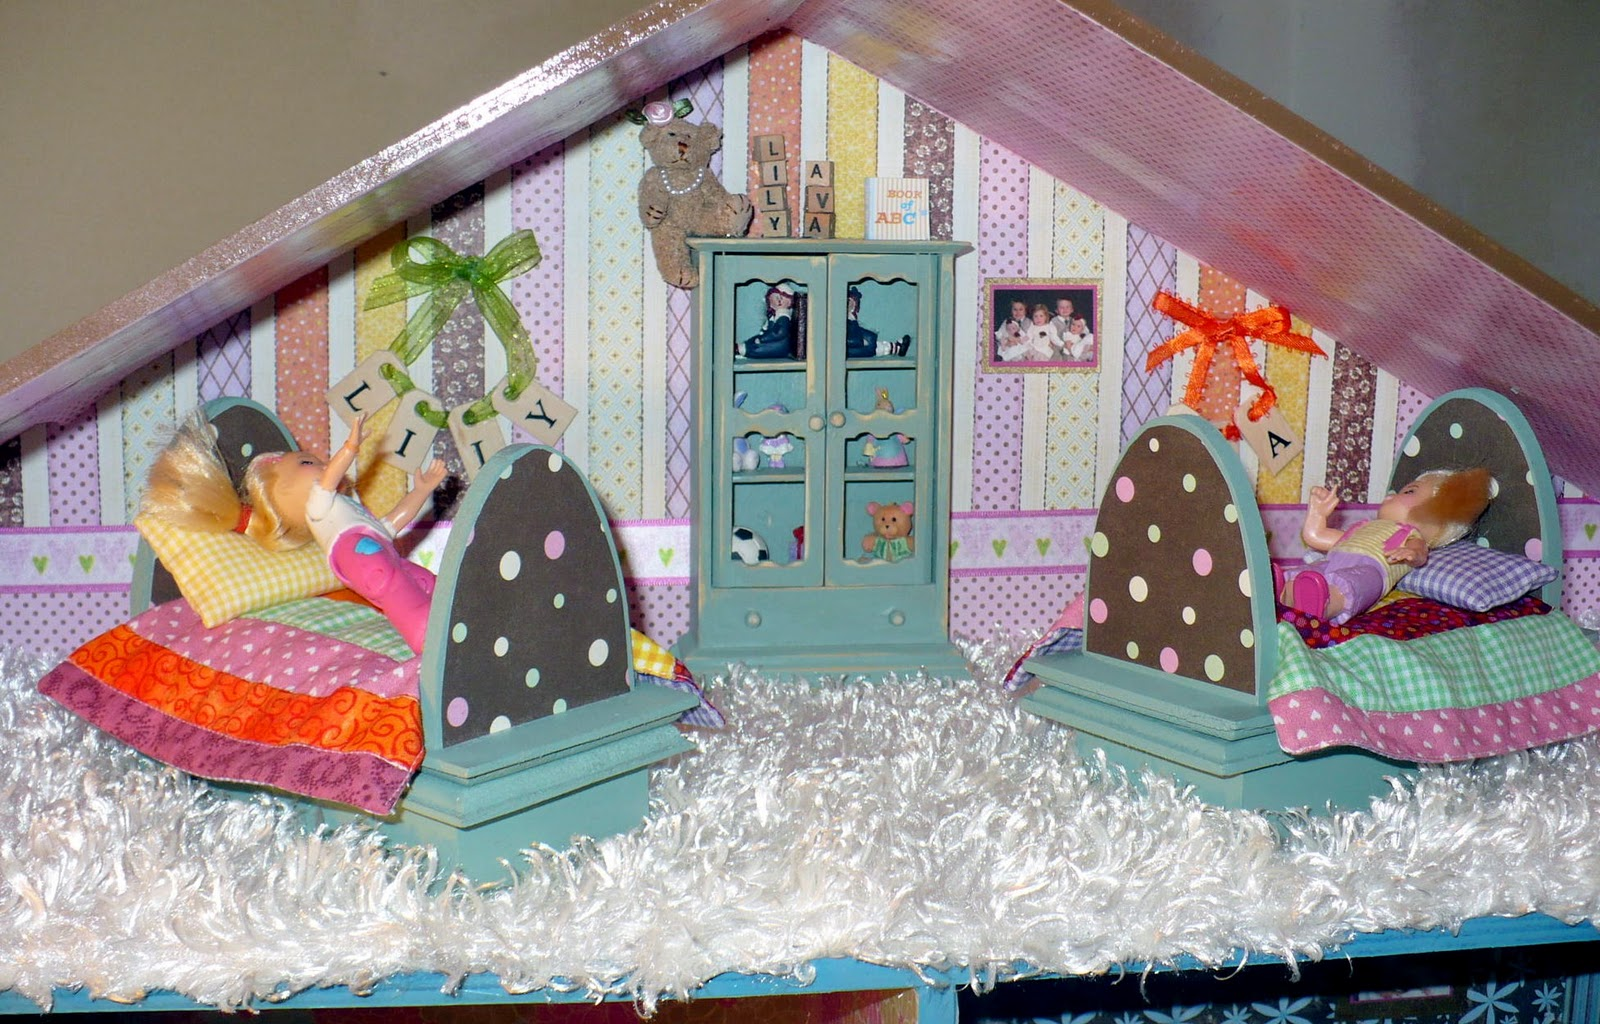 Scrapbook paper dollhouse wallpaper - She Used Scrapbook Paper And Mod Podged It Onto All The Walls She